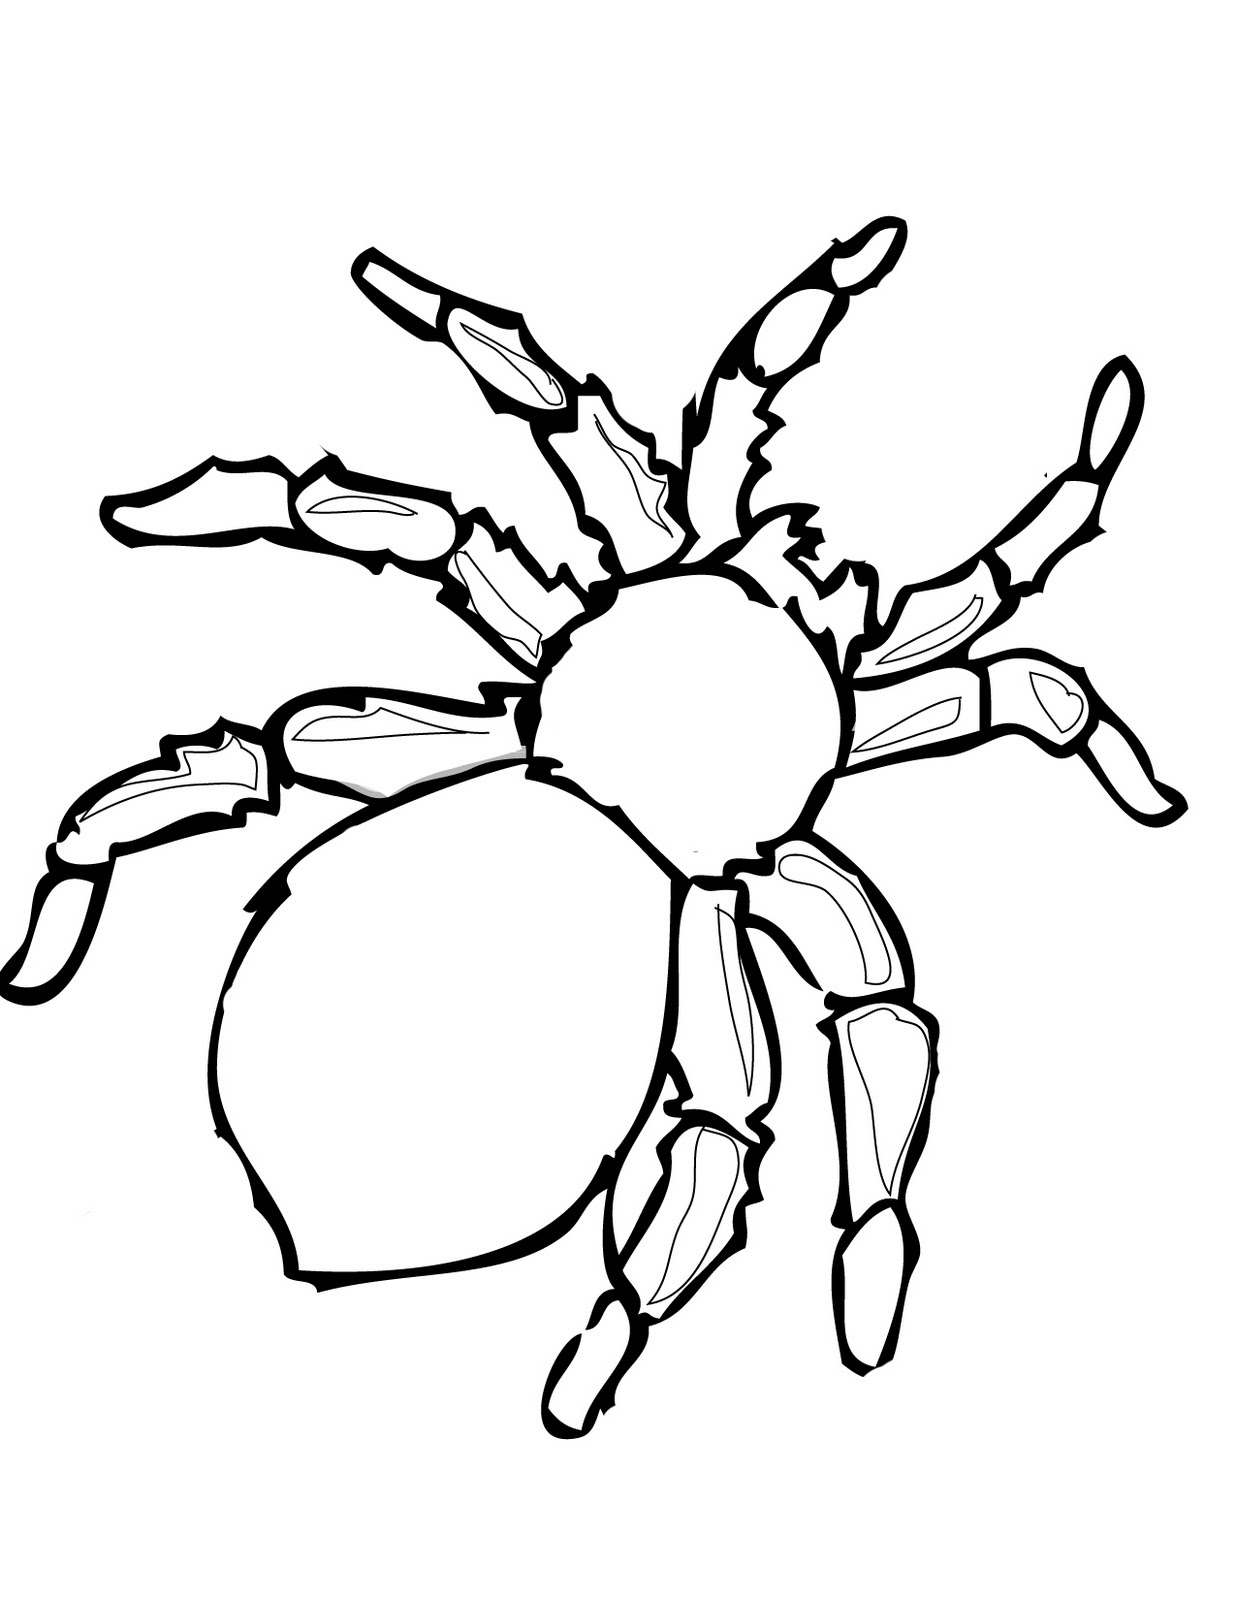 spider coloring book cute spider coloring page get coloring pages coloring book spider